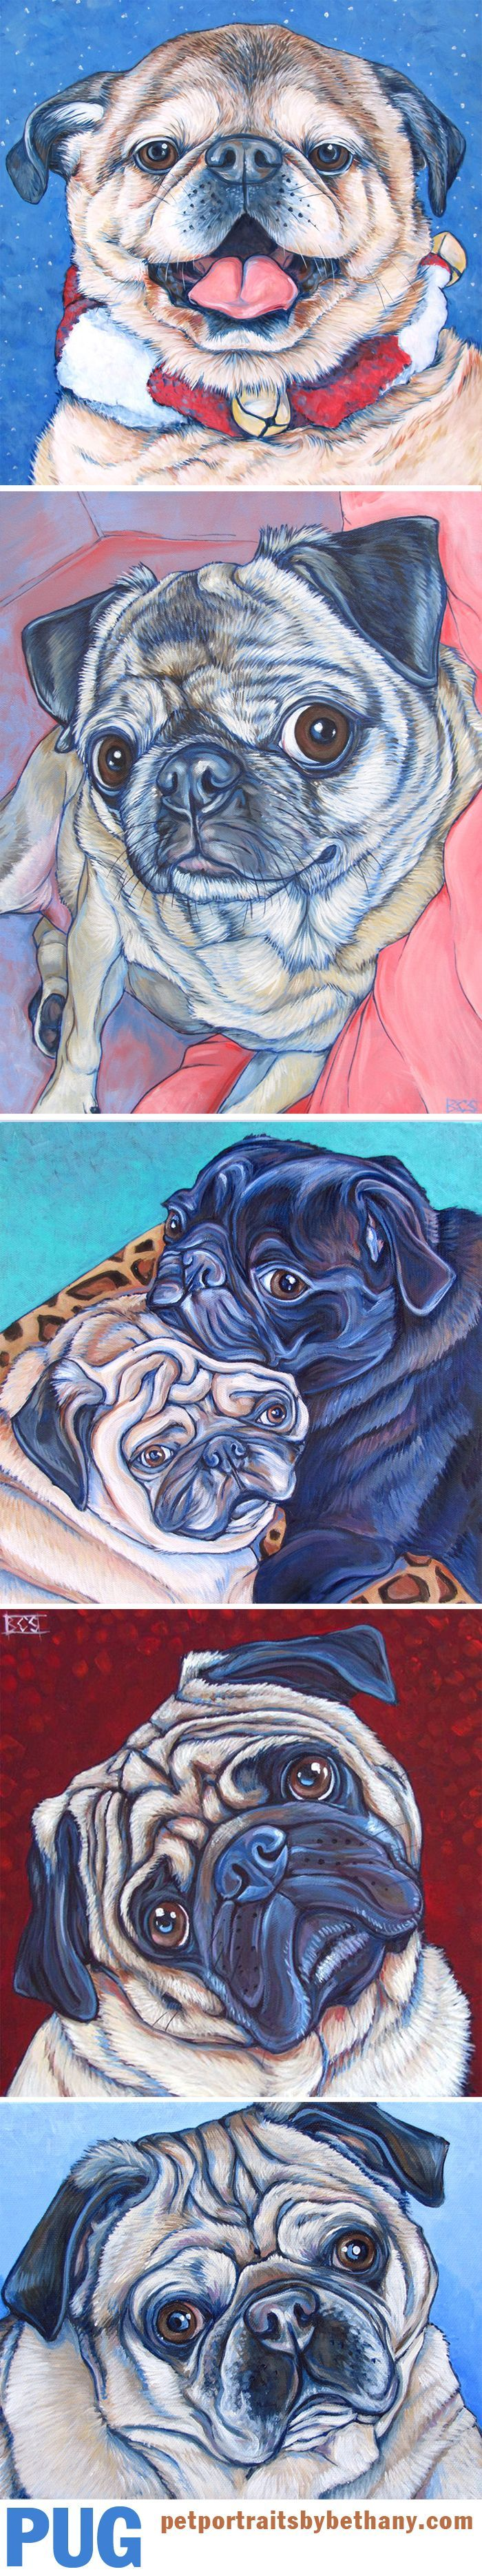 Pug custom pet portraits paintings in acrylic paint on canvas from